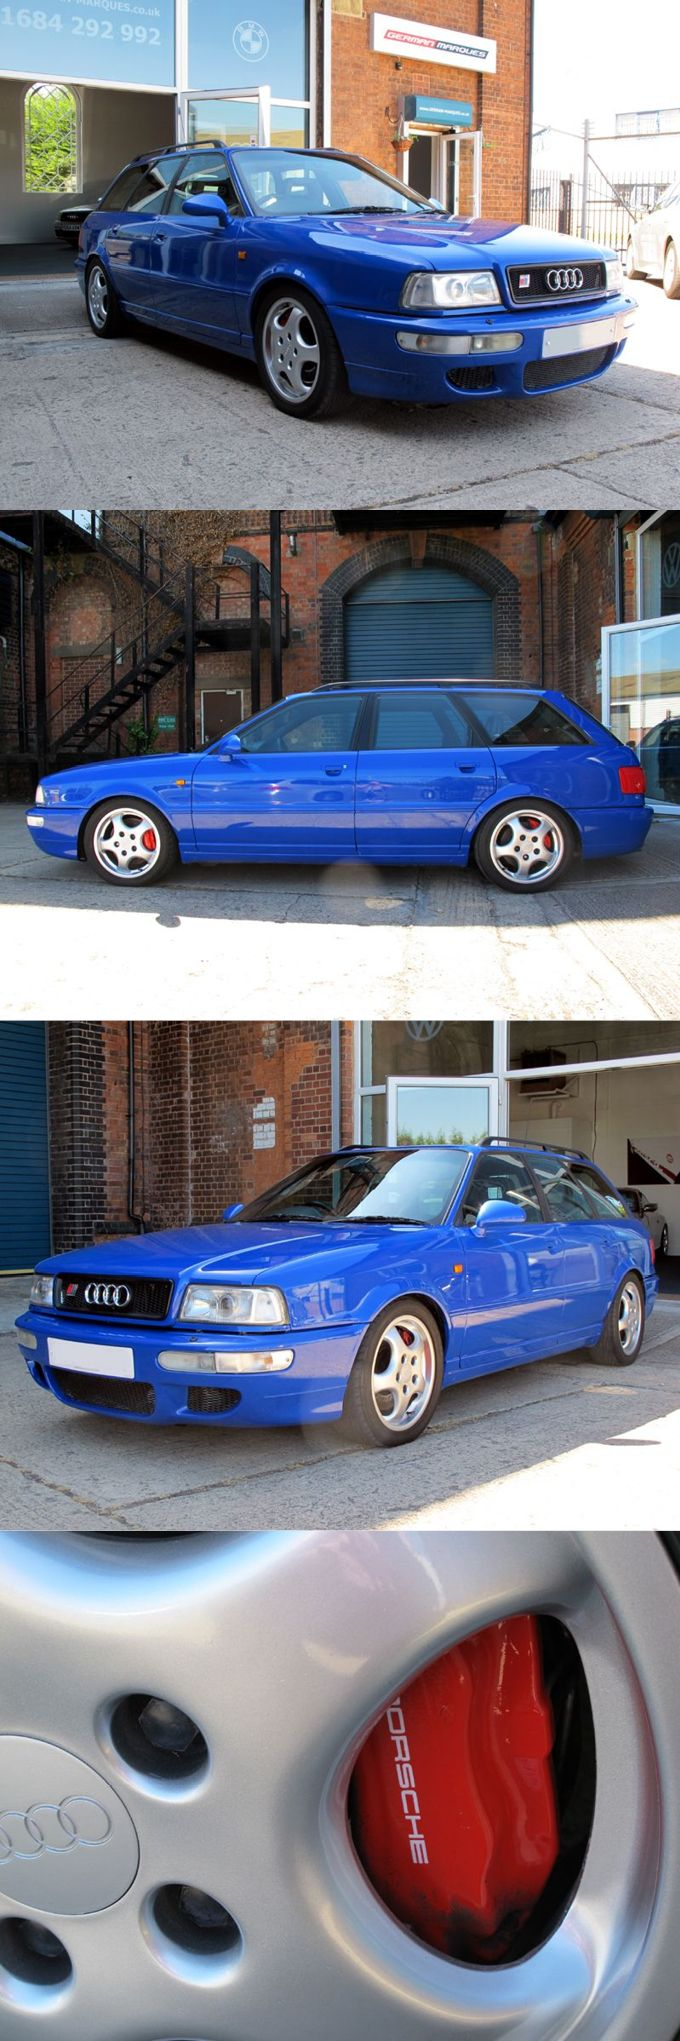 1994 Audi RS2 Avant / Germany / Porsche / 311 hp 2.891 manufactured / blue